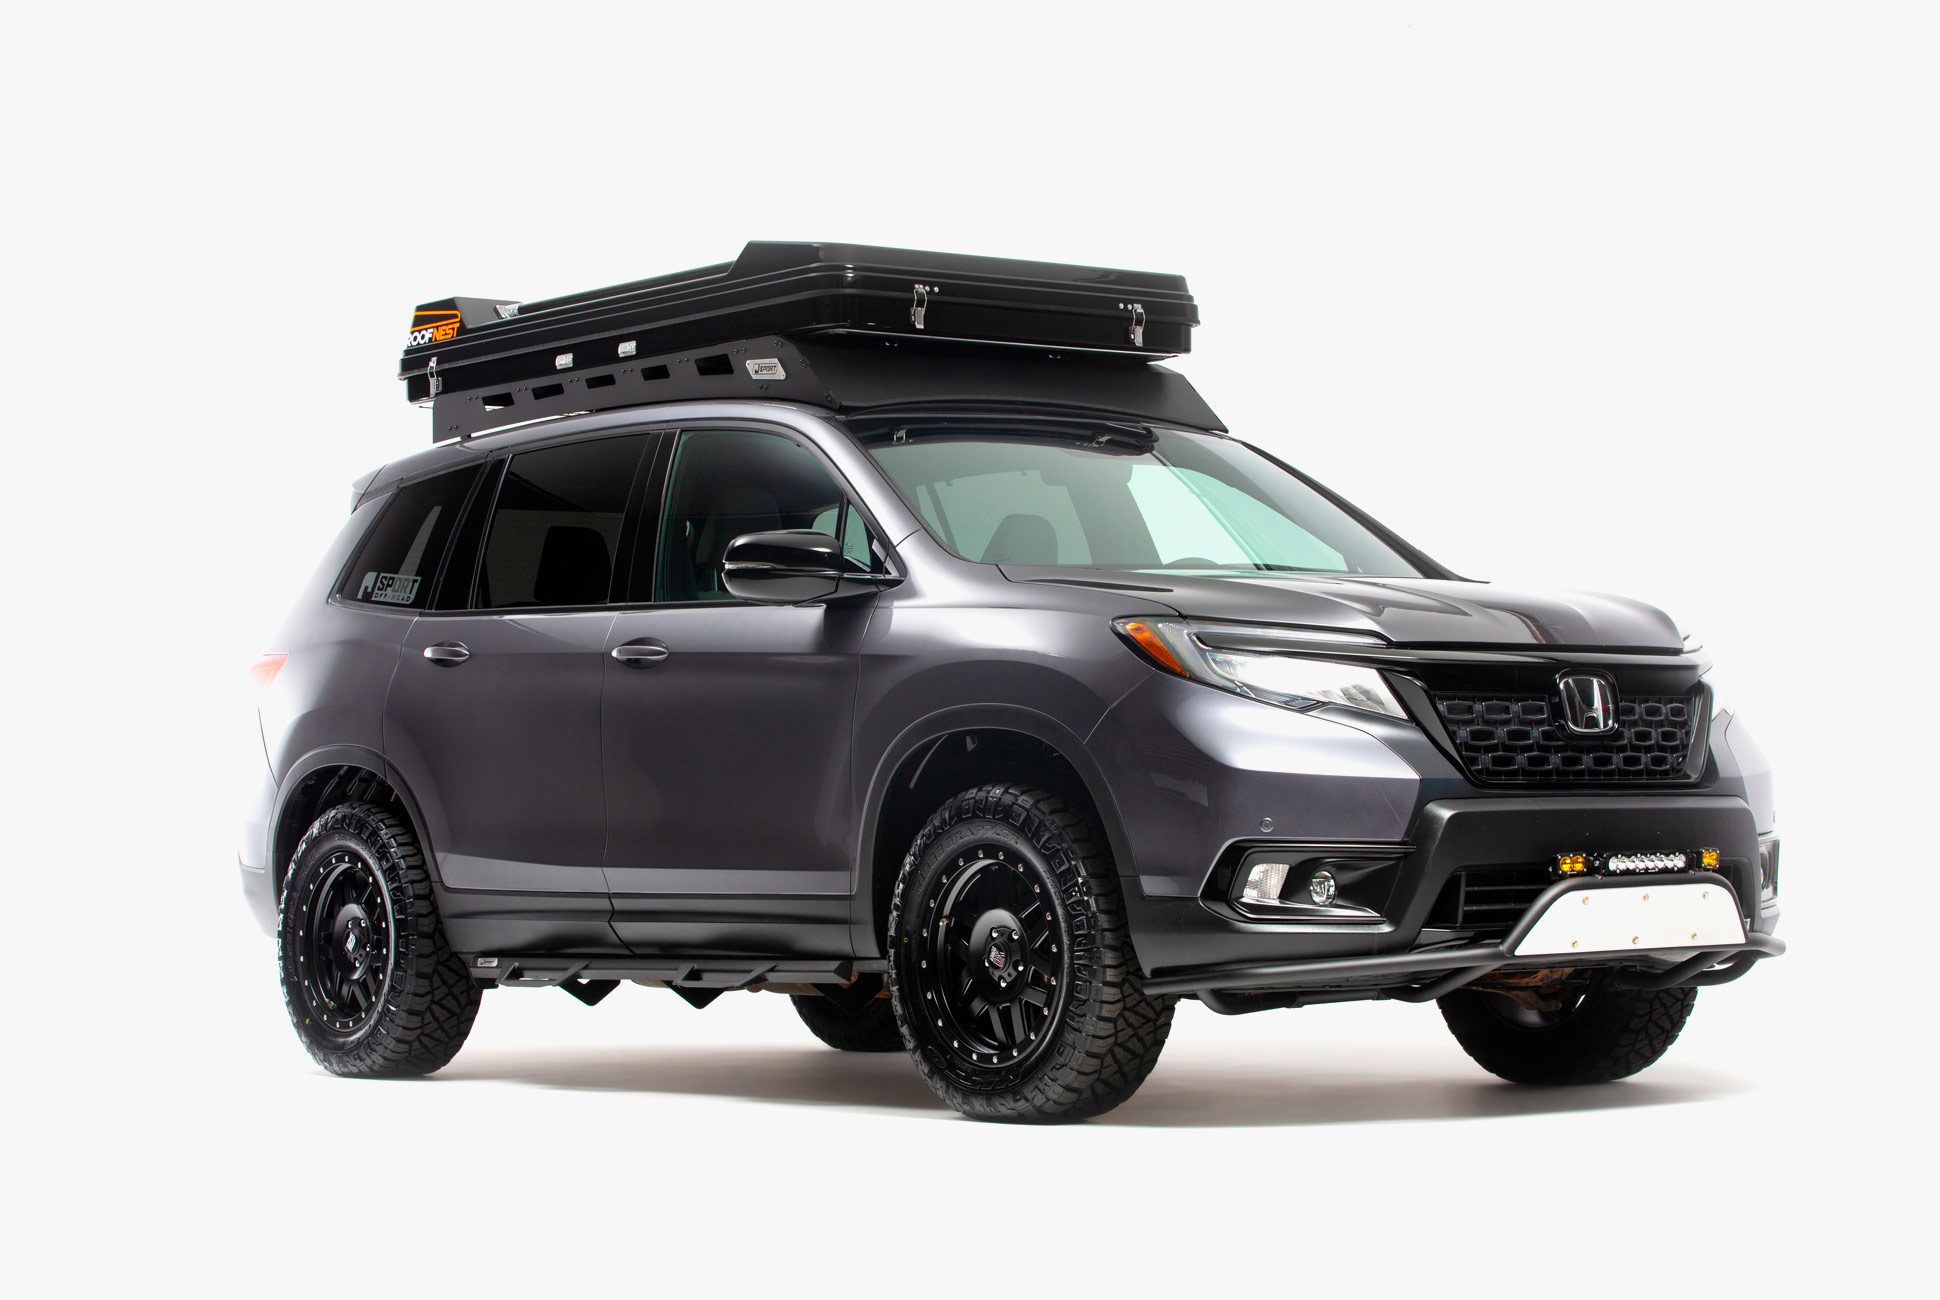 Honda-Passport-Overlander-gear-patrol-slide-1